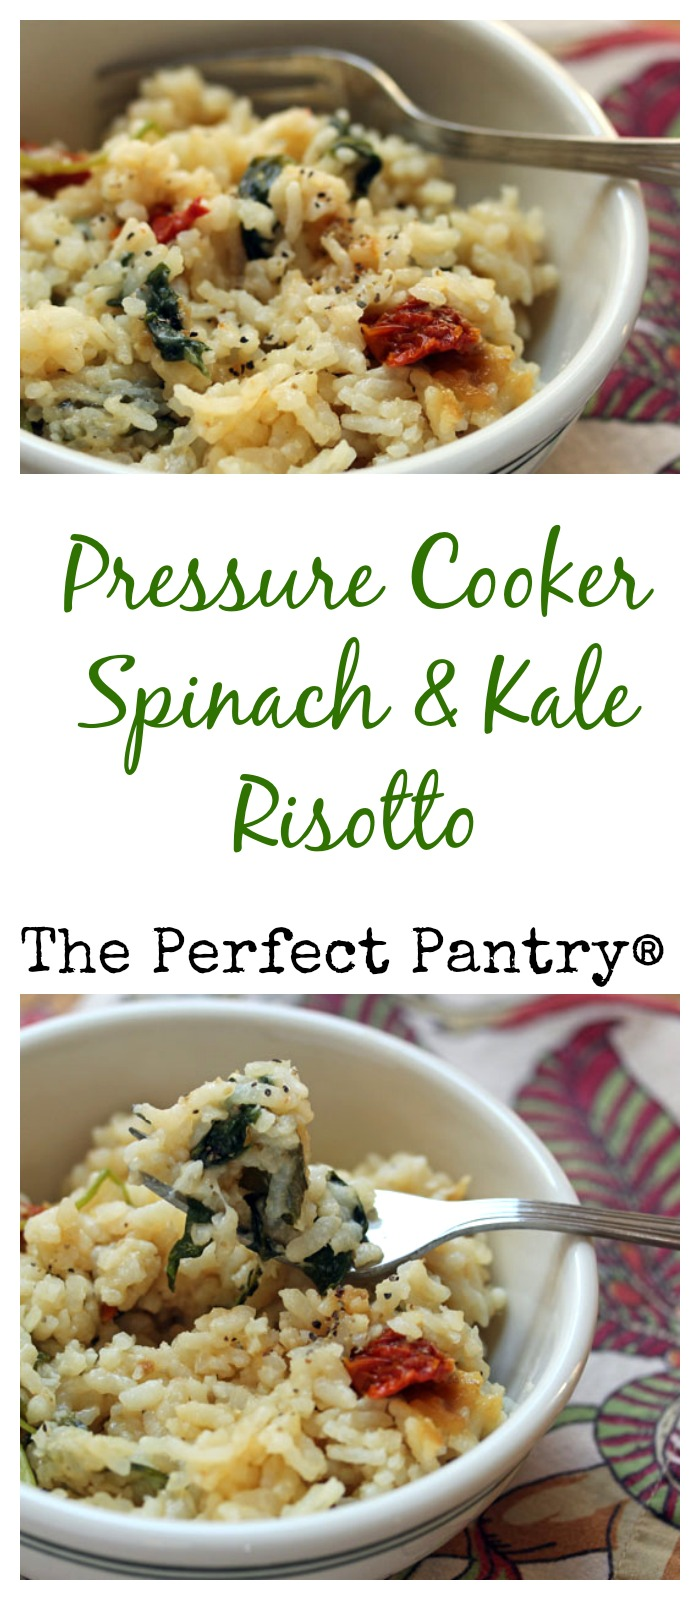 Make this risotto in less than 30 minutes: no stirring! #vegetarian #glutenfree